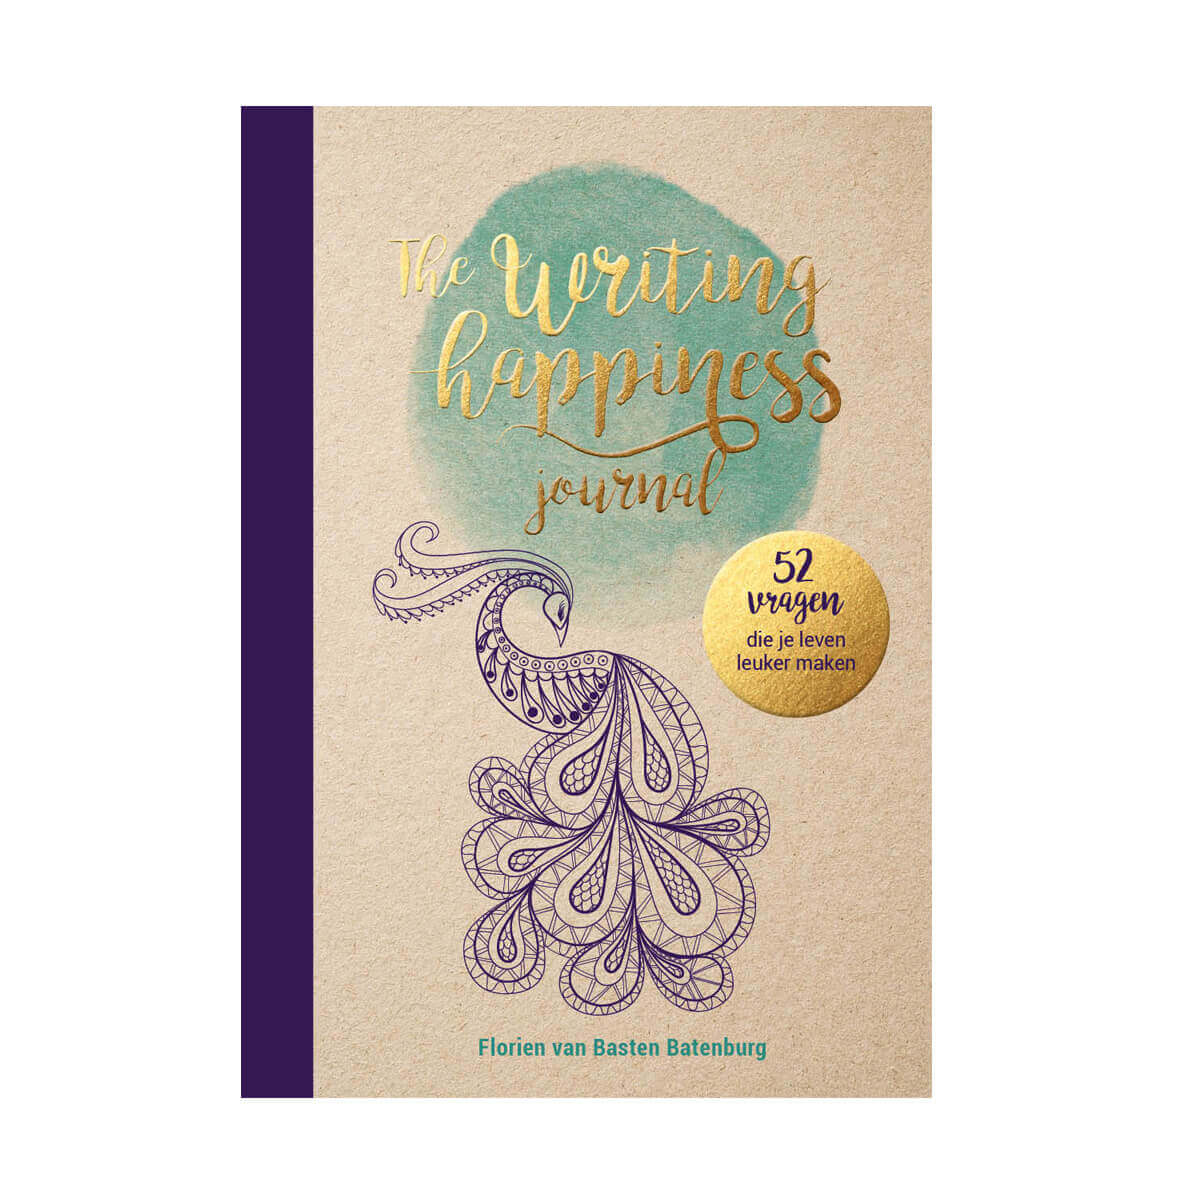 The writing happiness journal